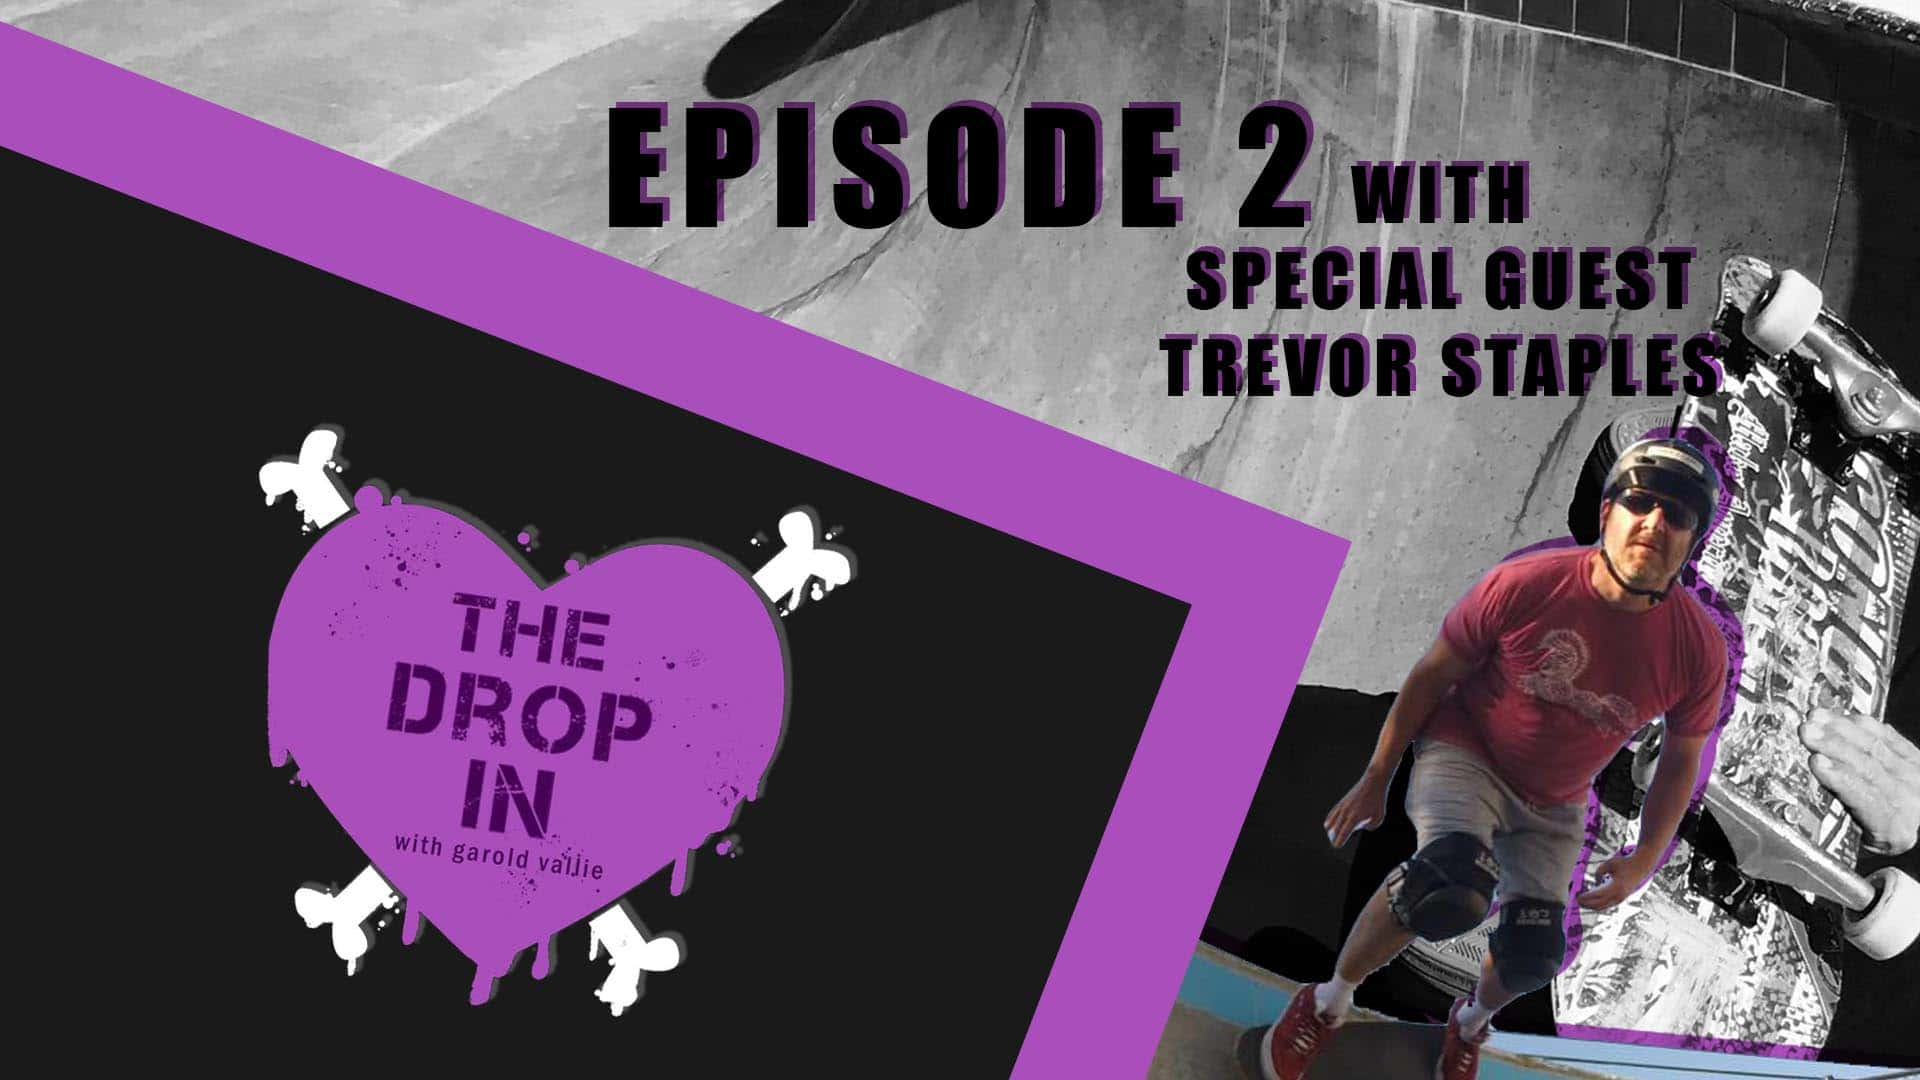 The Drop In With Garold Vallie - Episode 2